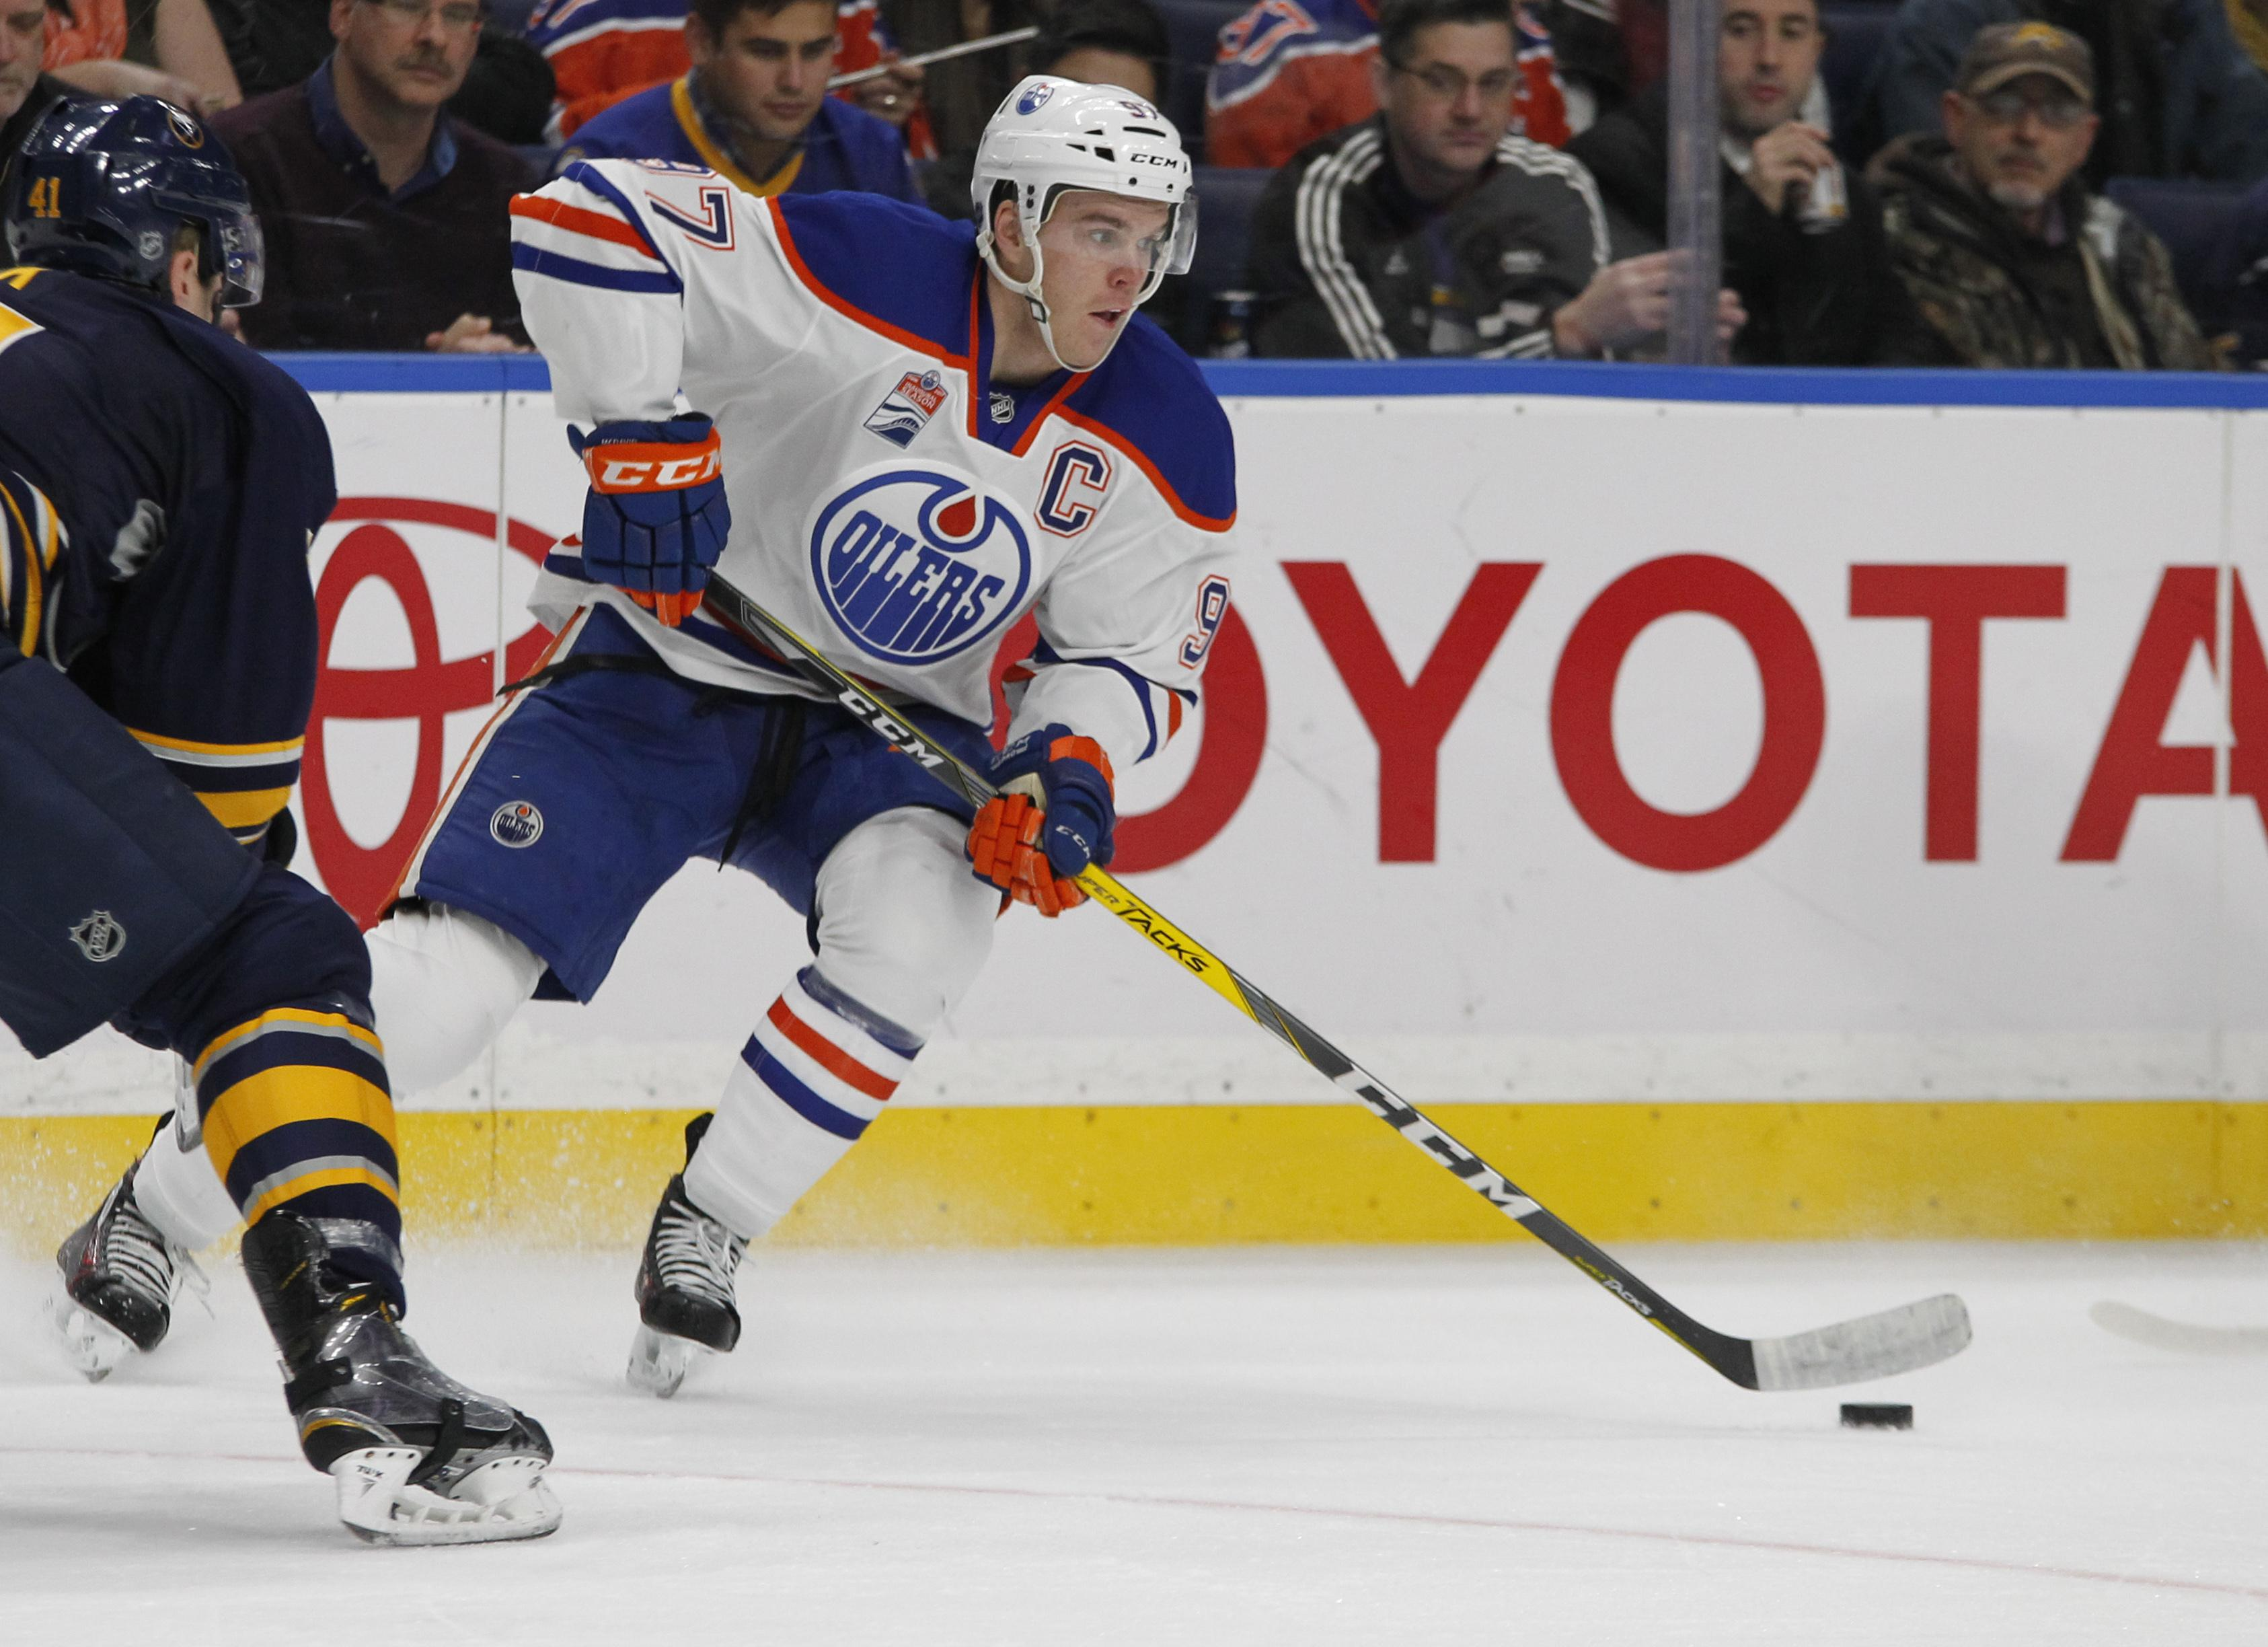 8b0aff77c0a Oilers sign star Connor McDavid to 8-year